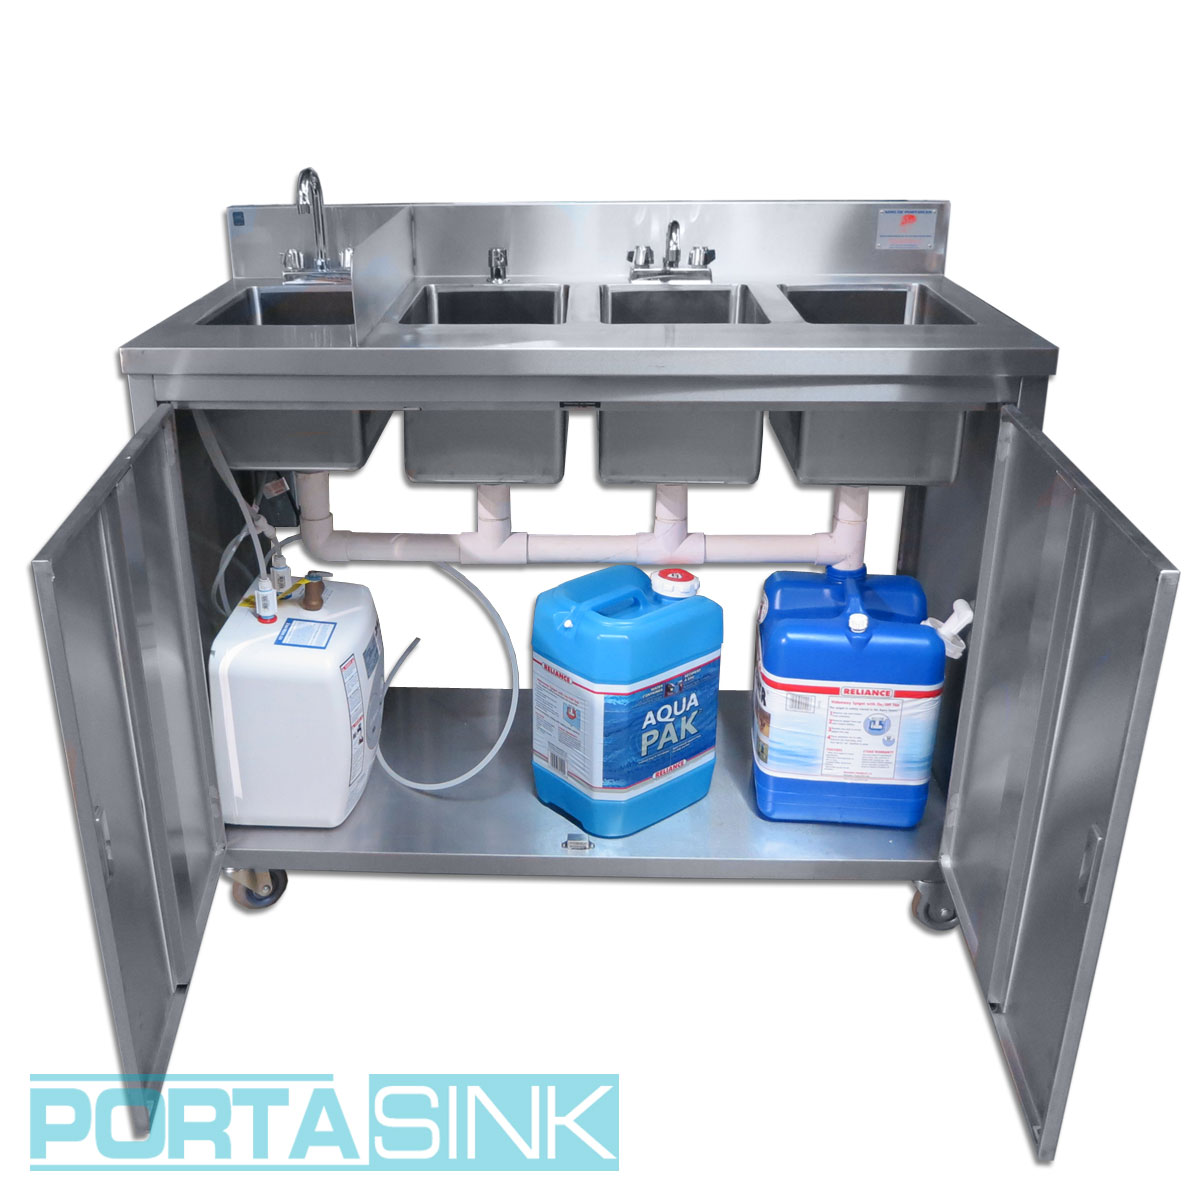 Portable 4 Compartment Sink.Portable Hand Sink 4 Compartments Portable Sink